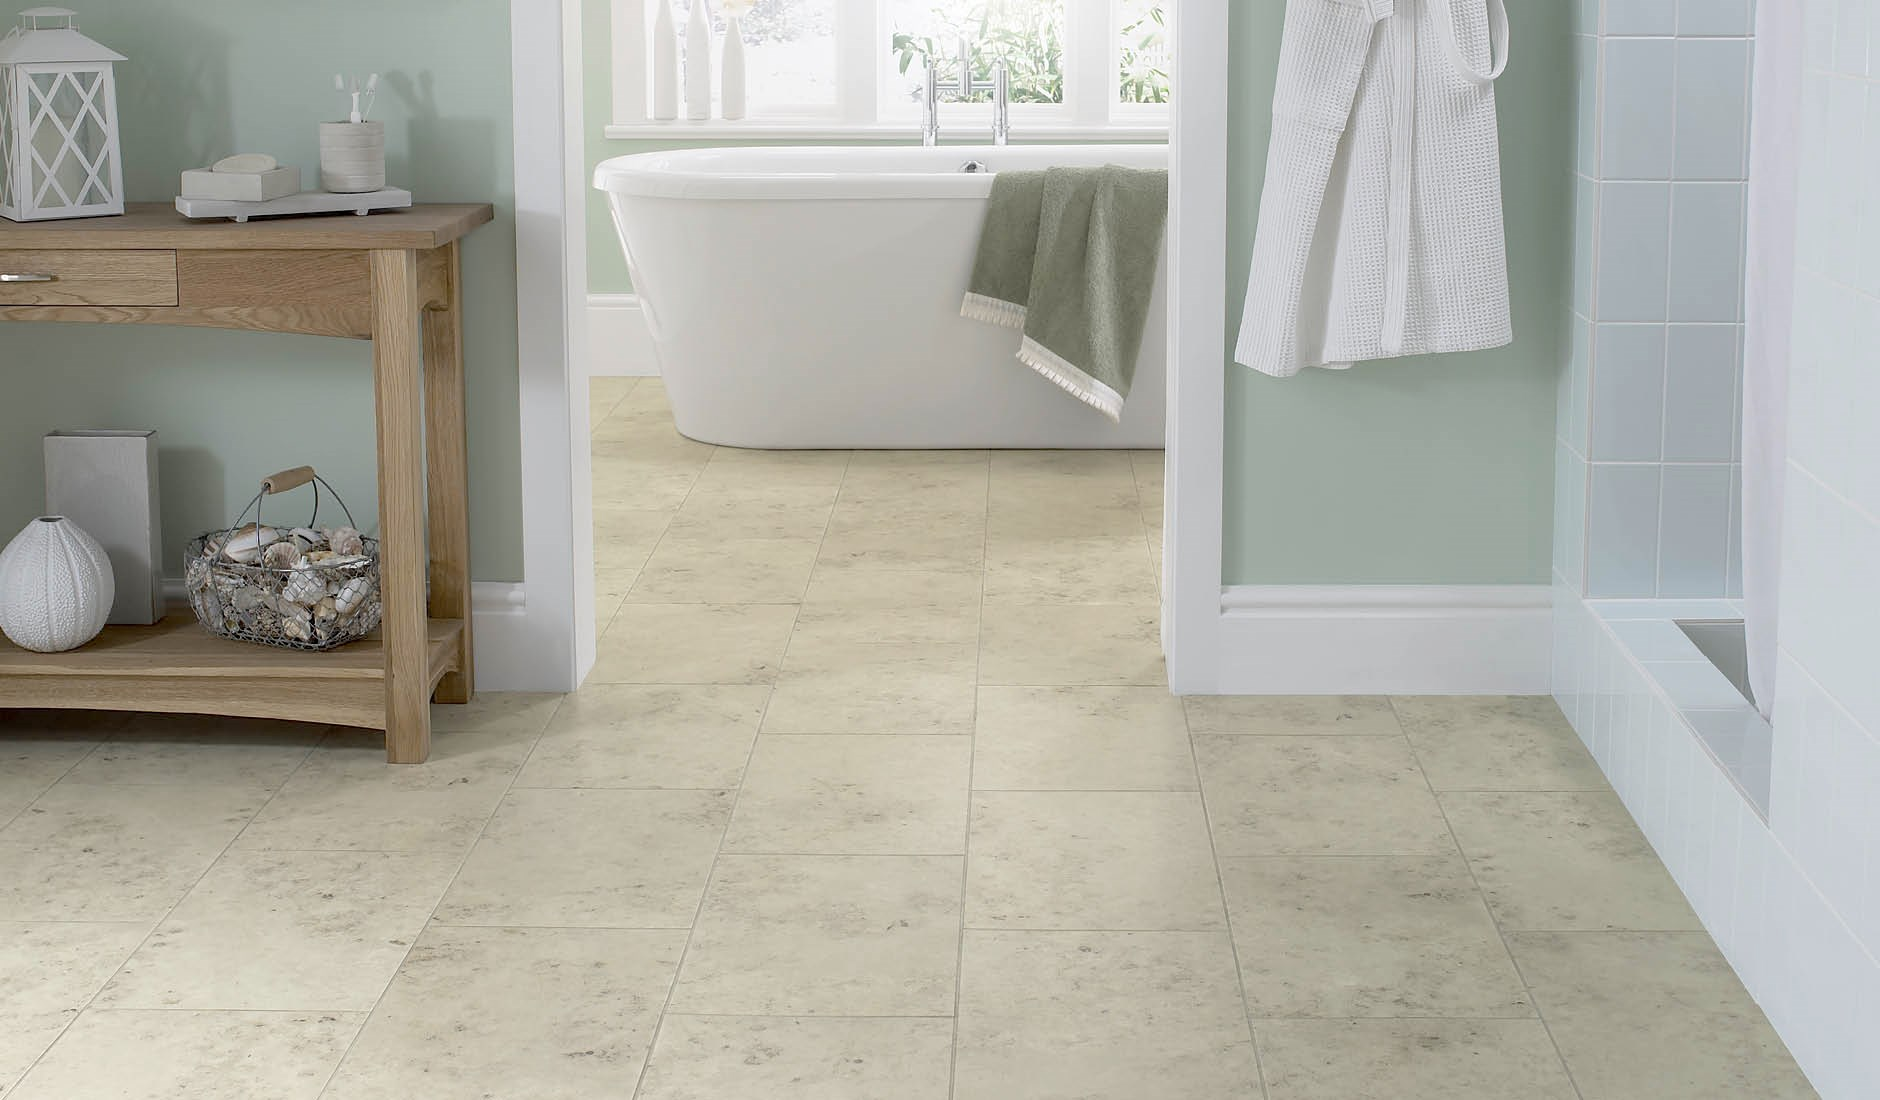 pebble-floor-tiles-2-bathroom-floor-tile-1880-x-1100